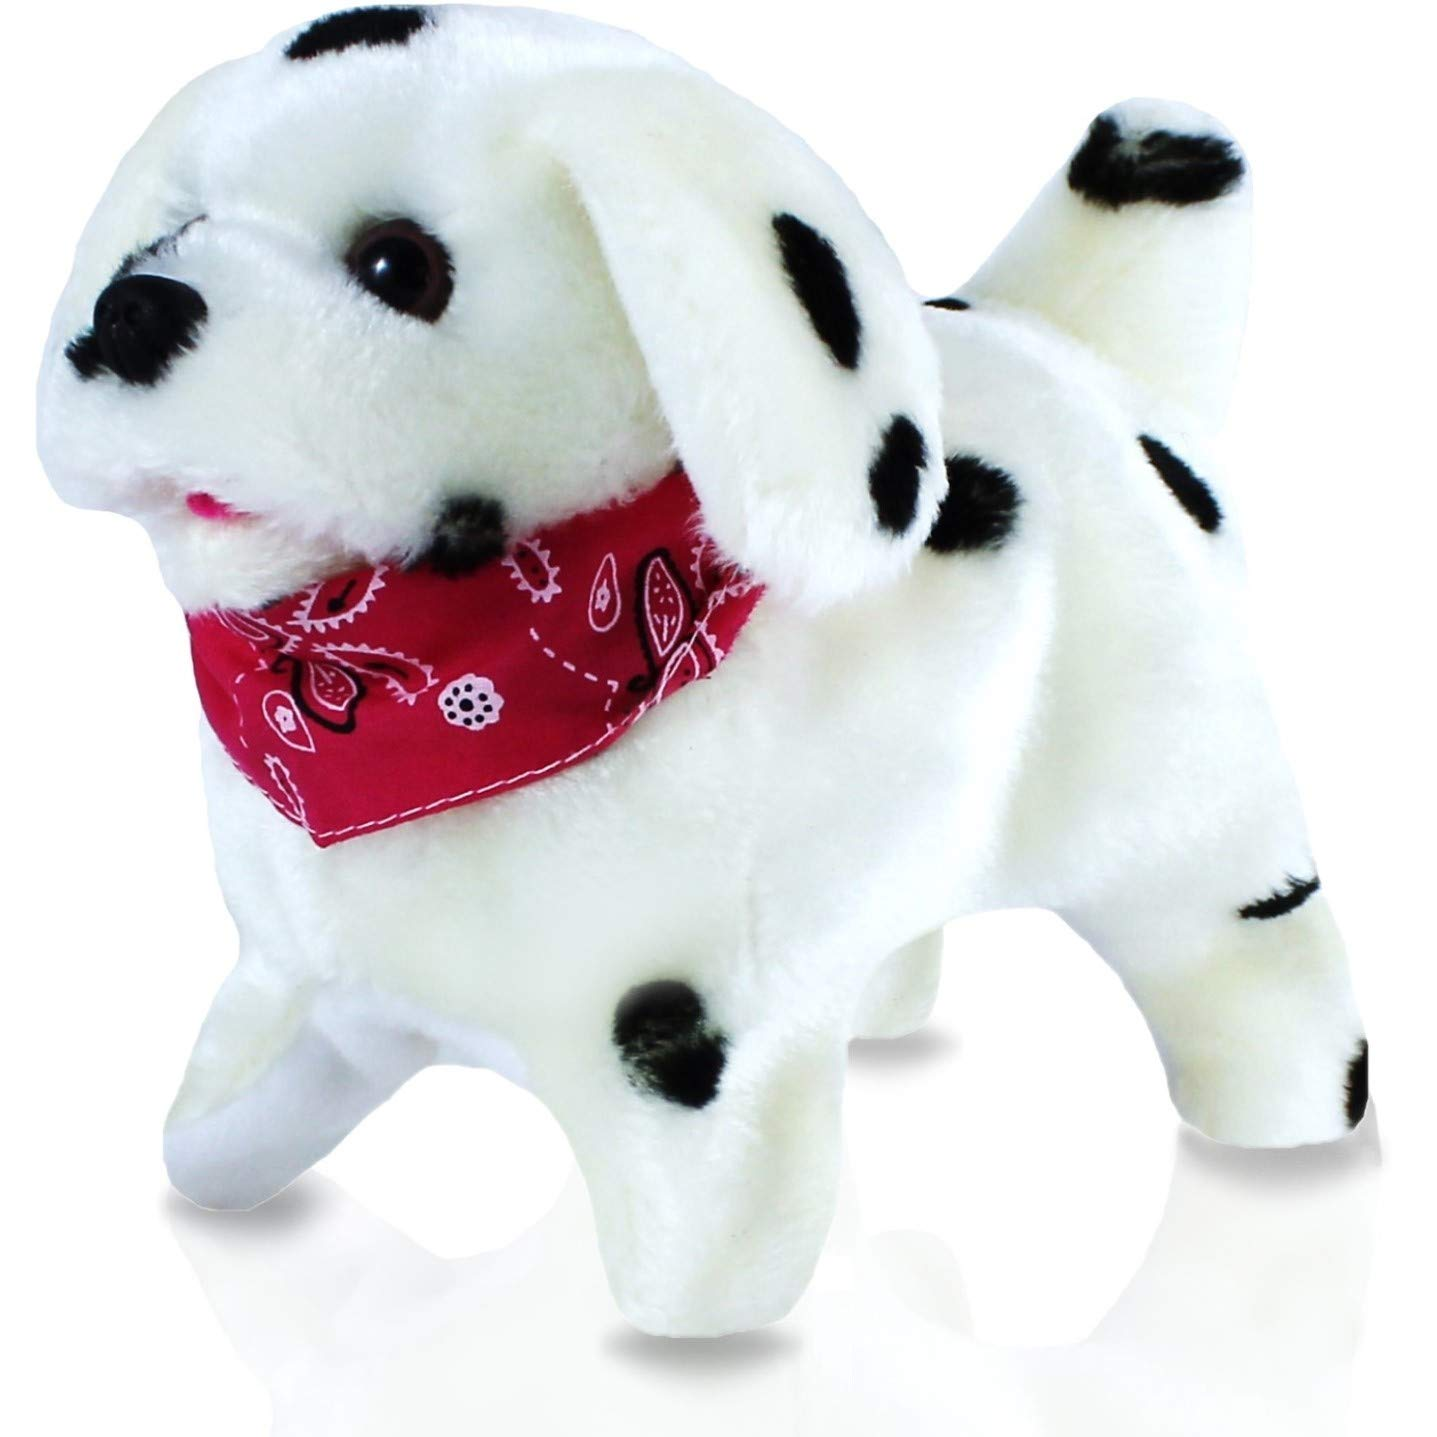 "Haktoys Flip Over Puppy | Battery Operated Somersaulting, Walking, Sitting, Barking Plush Cute Little Dalmatian 7"" Dog 